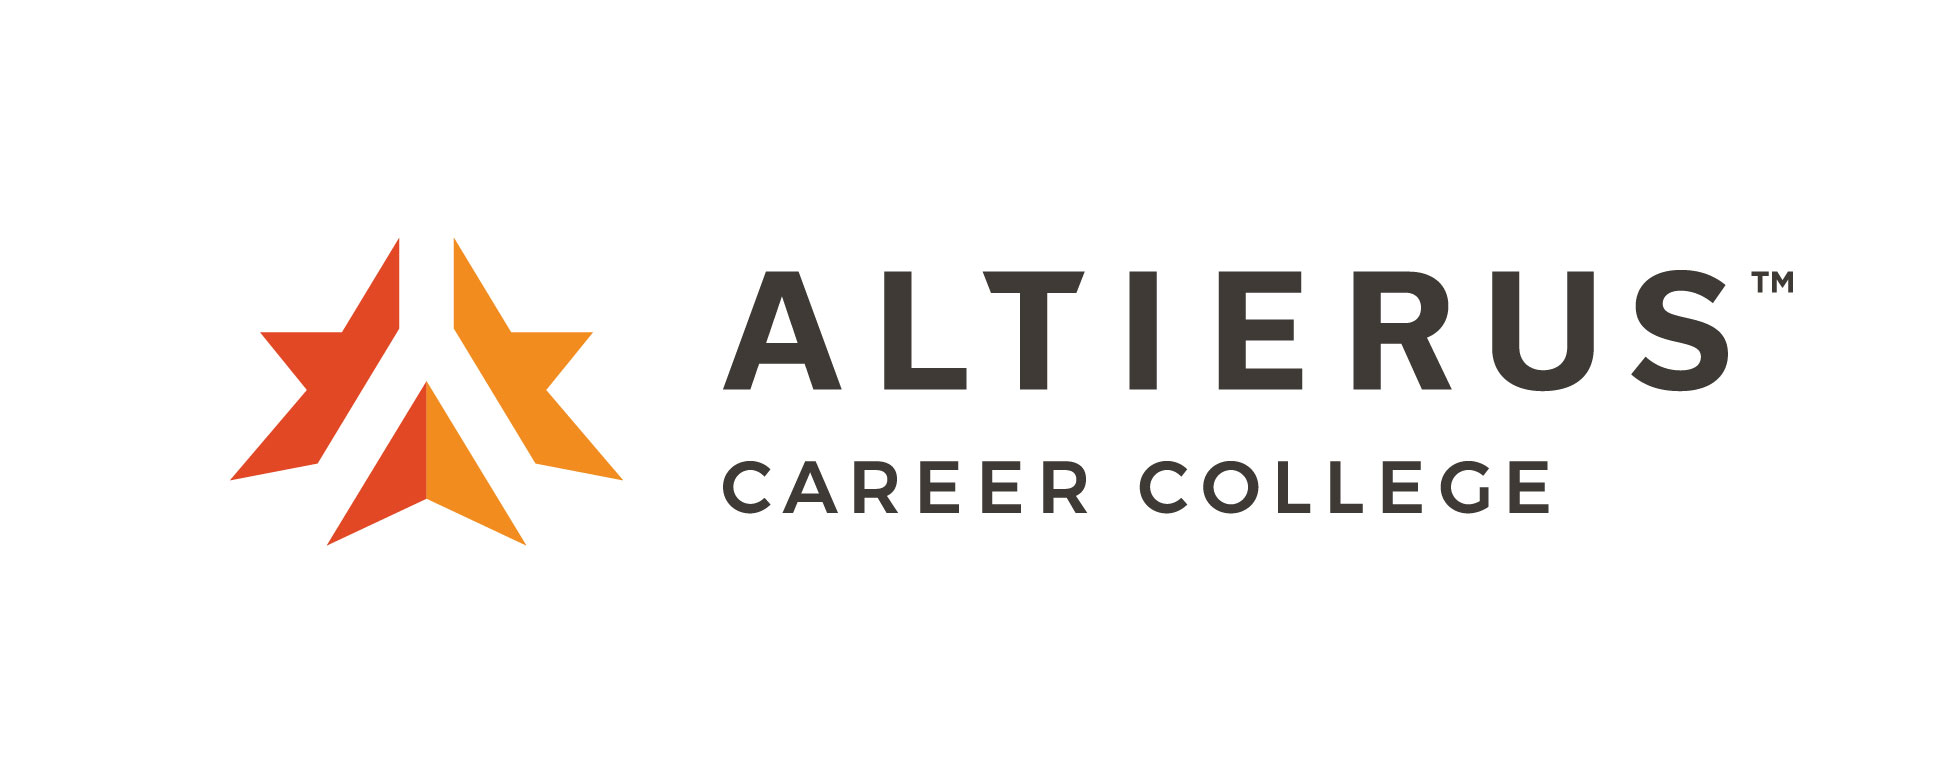 Altierus Career College - Campus